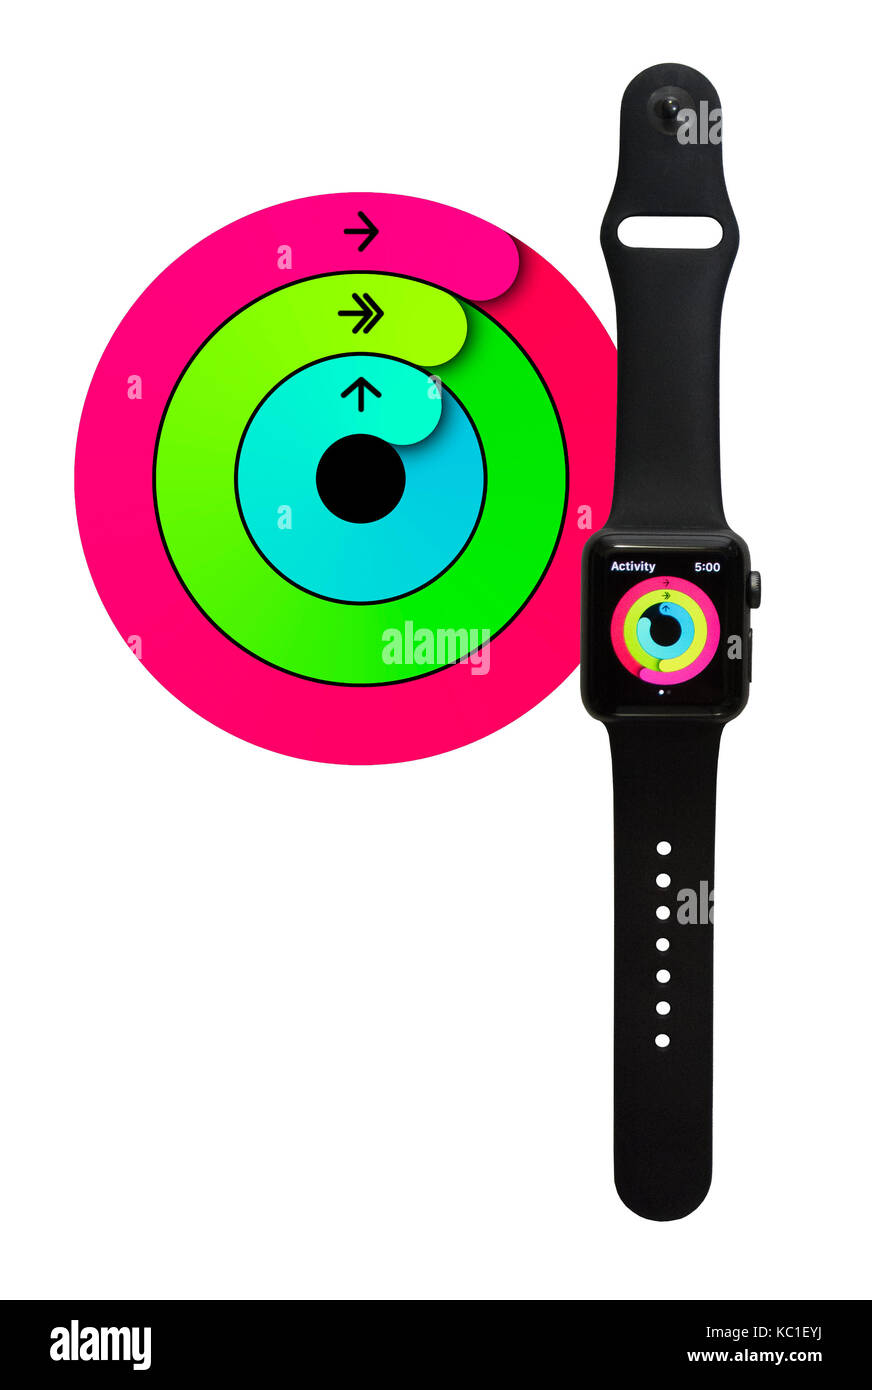 Apple Watch Series 2 38mm With Space Gray Aluminum Black Sport Band Showing The Colorful Rings Of Activity Fitness Tracker App